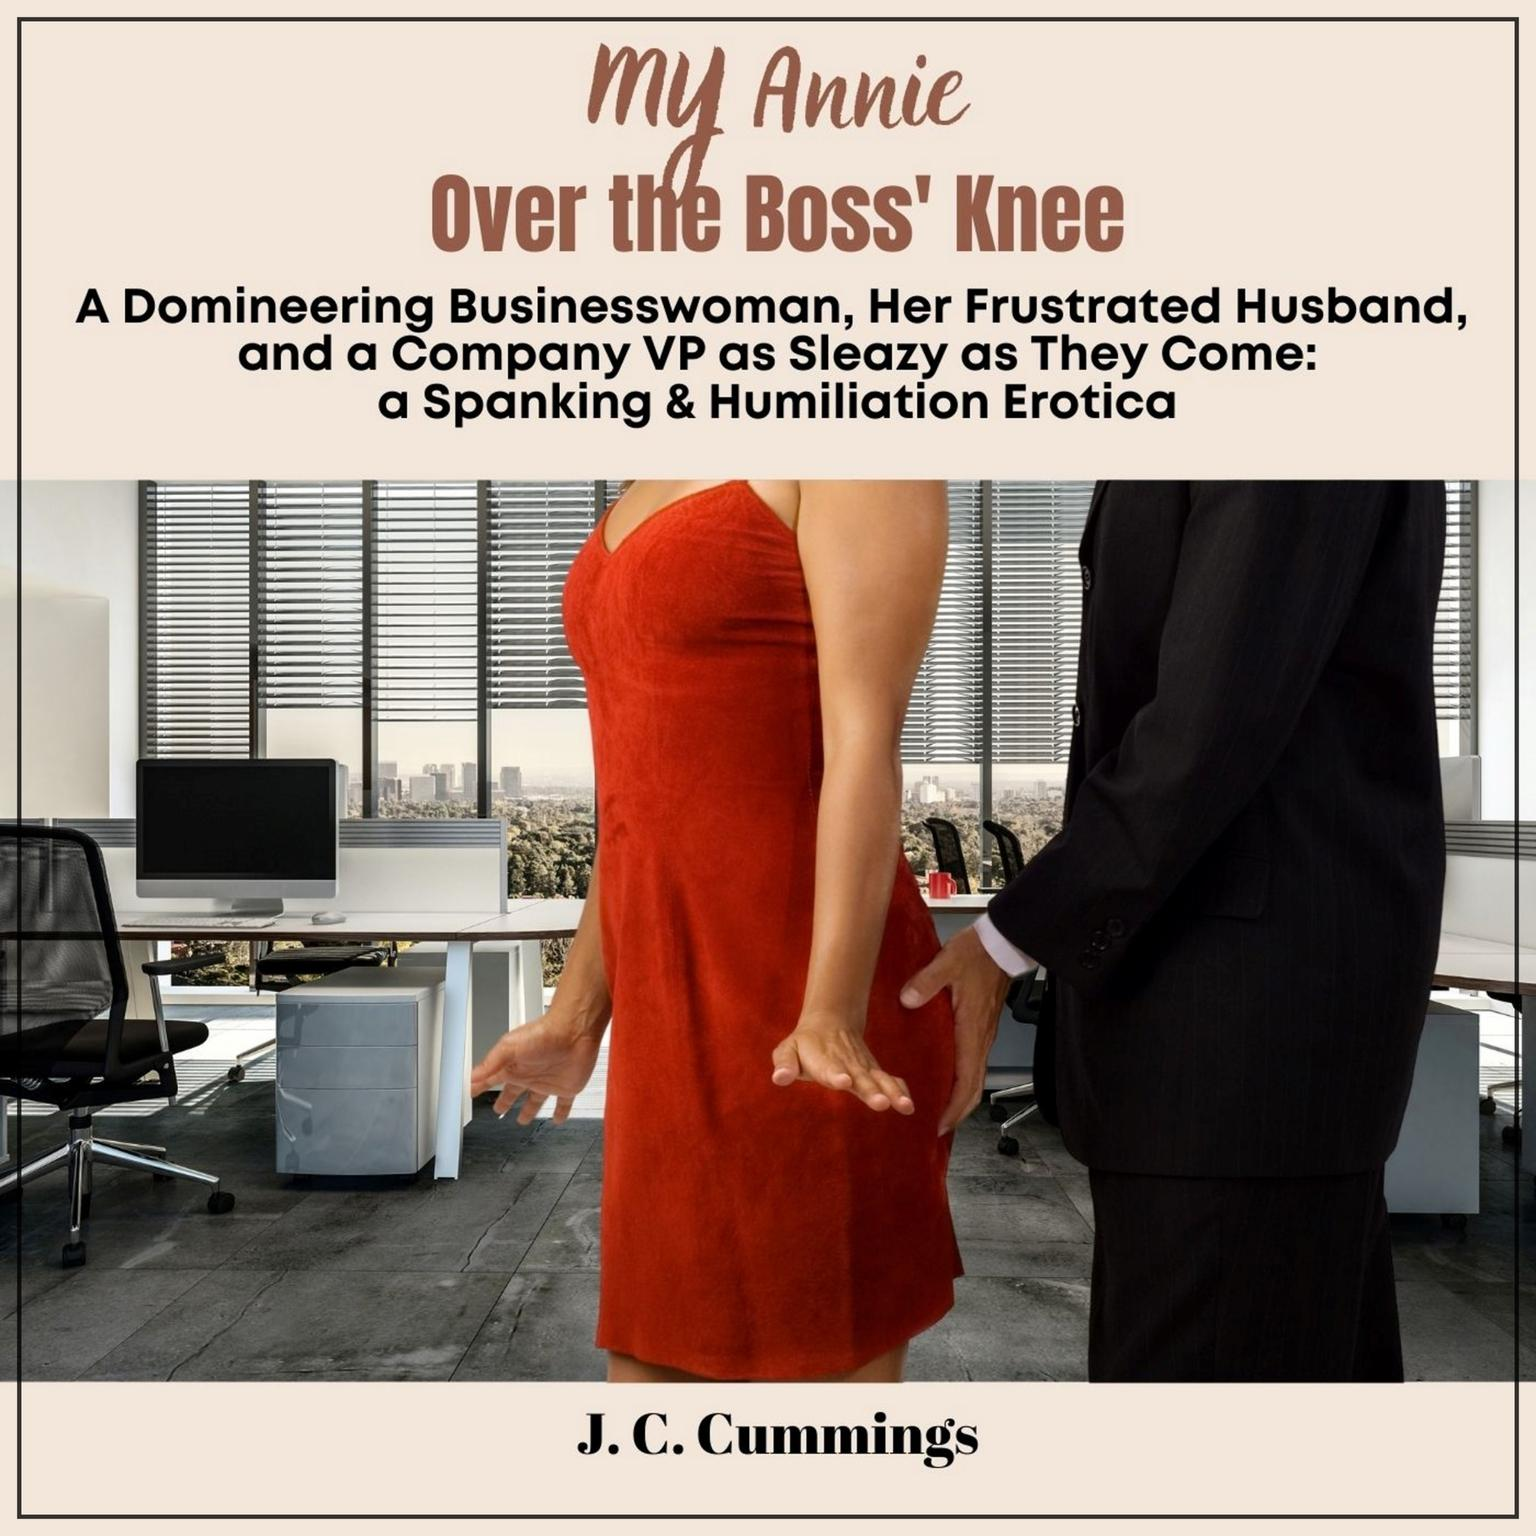 My Annie--Over the Boss Knee: A Domineering Businesswoman, Her Frustrated Husband, and a Company VP as Sleazy as They Come: Spanking & Humiliation Erotica Audiobook, by J.C. Cummings